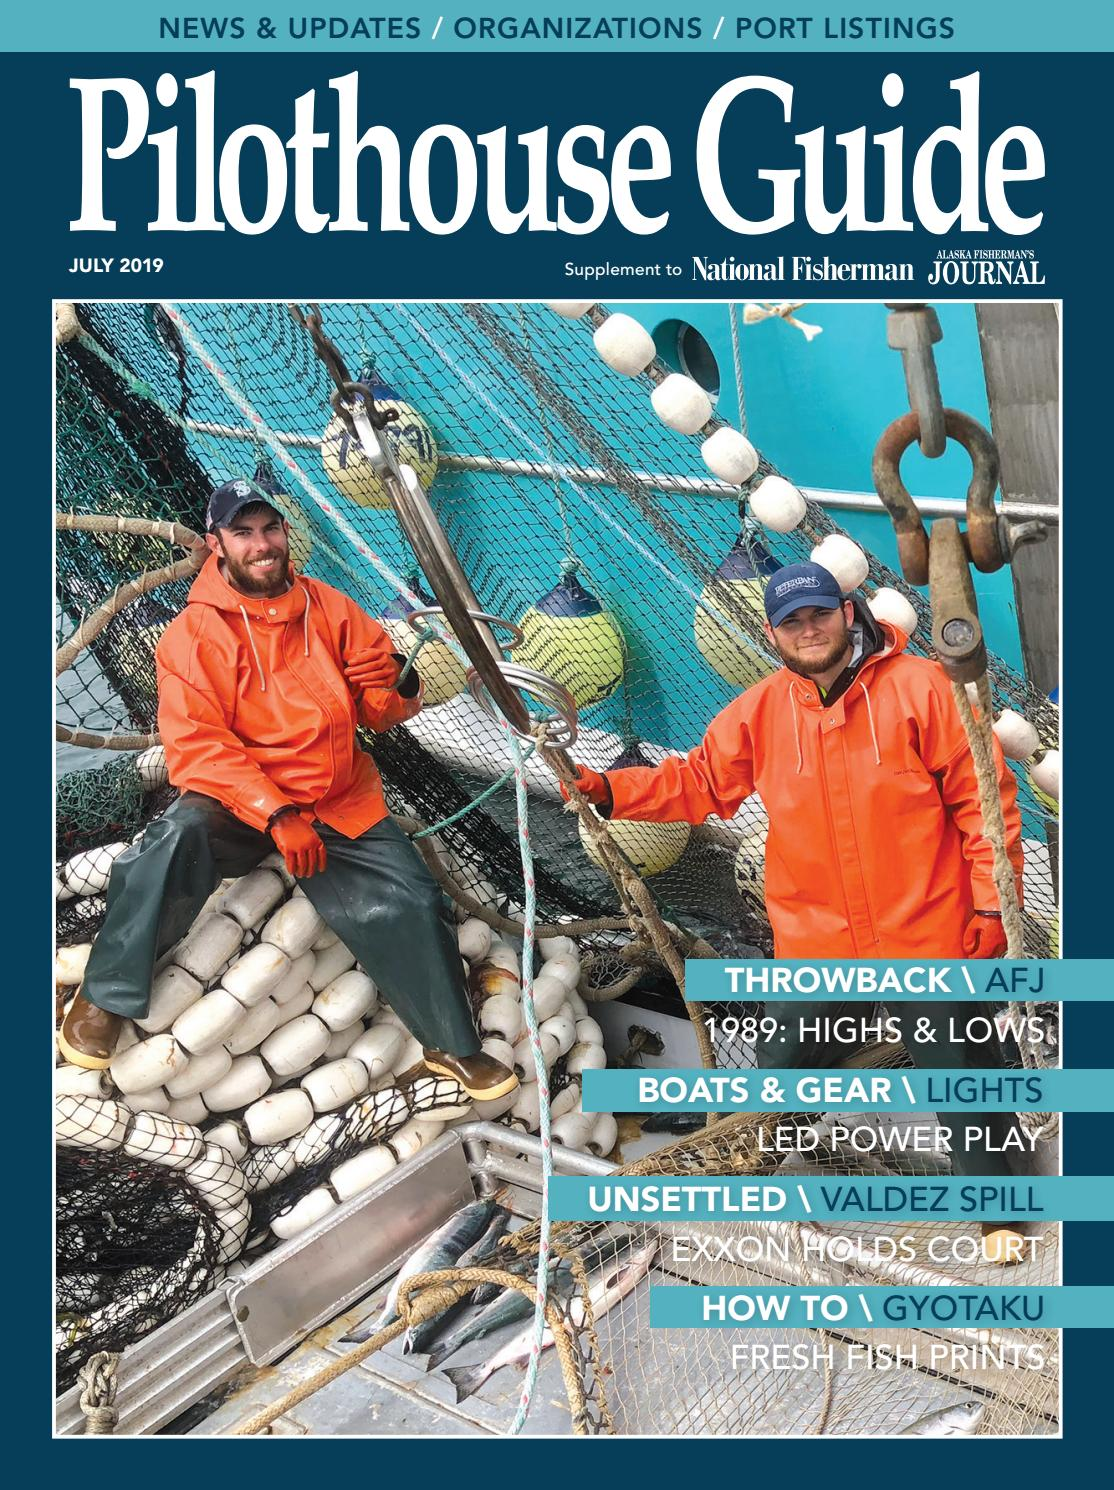 Pilothouse Guide 2019 By National Fisherman Issuu